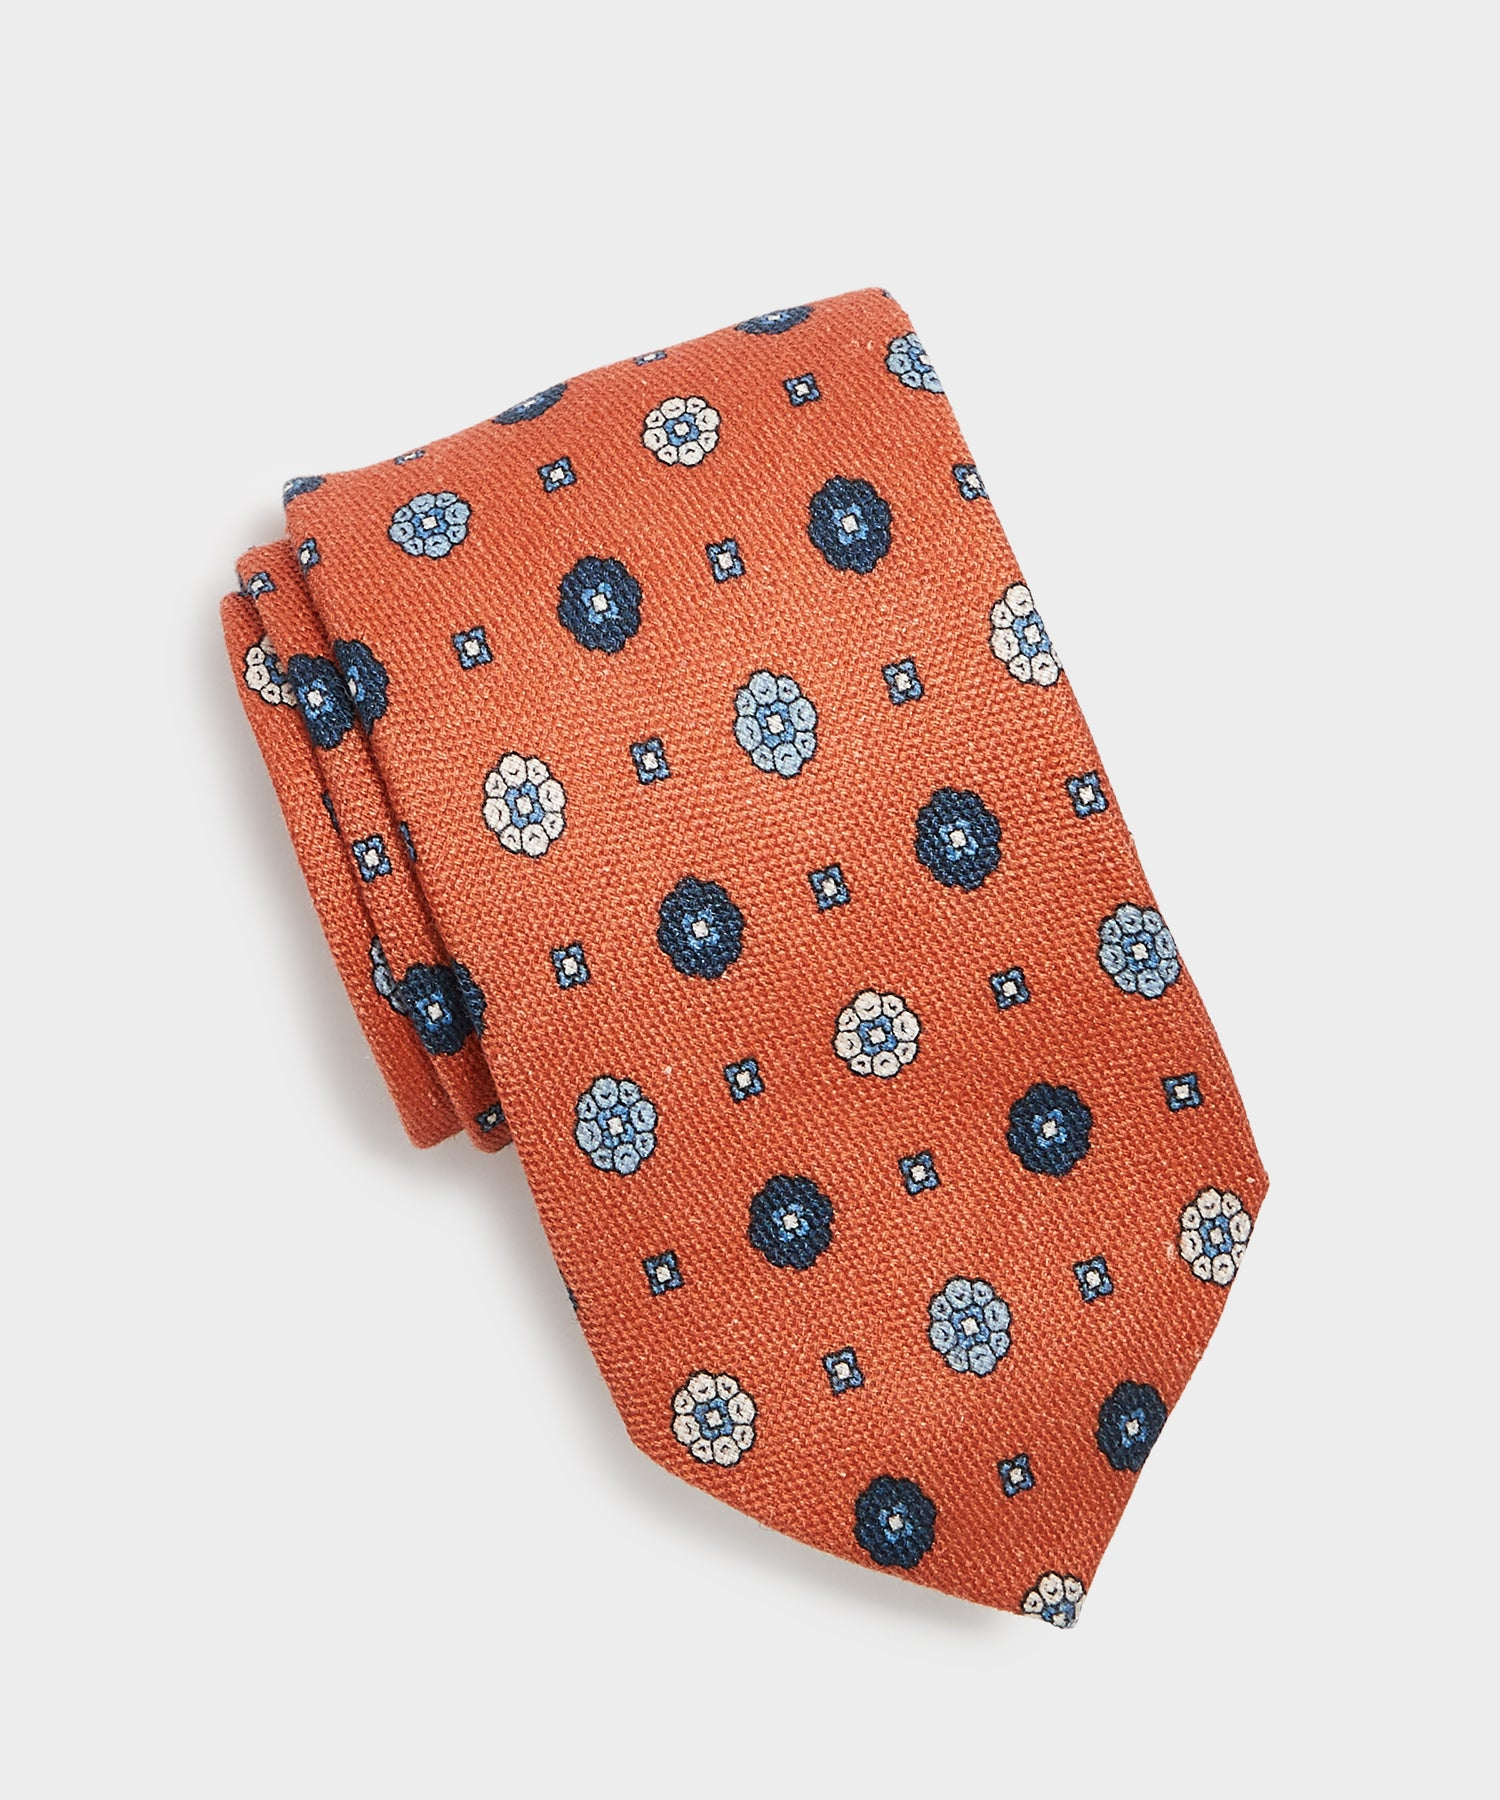 Drake's Printed Daisy Print Tie in Orange